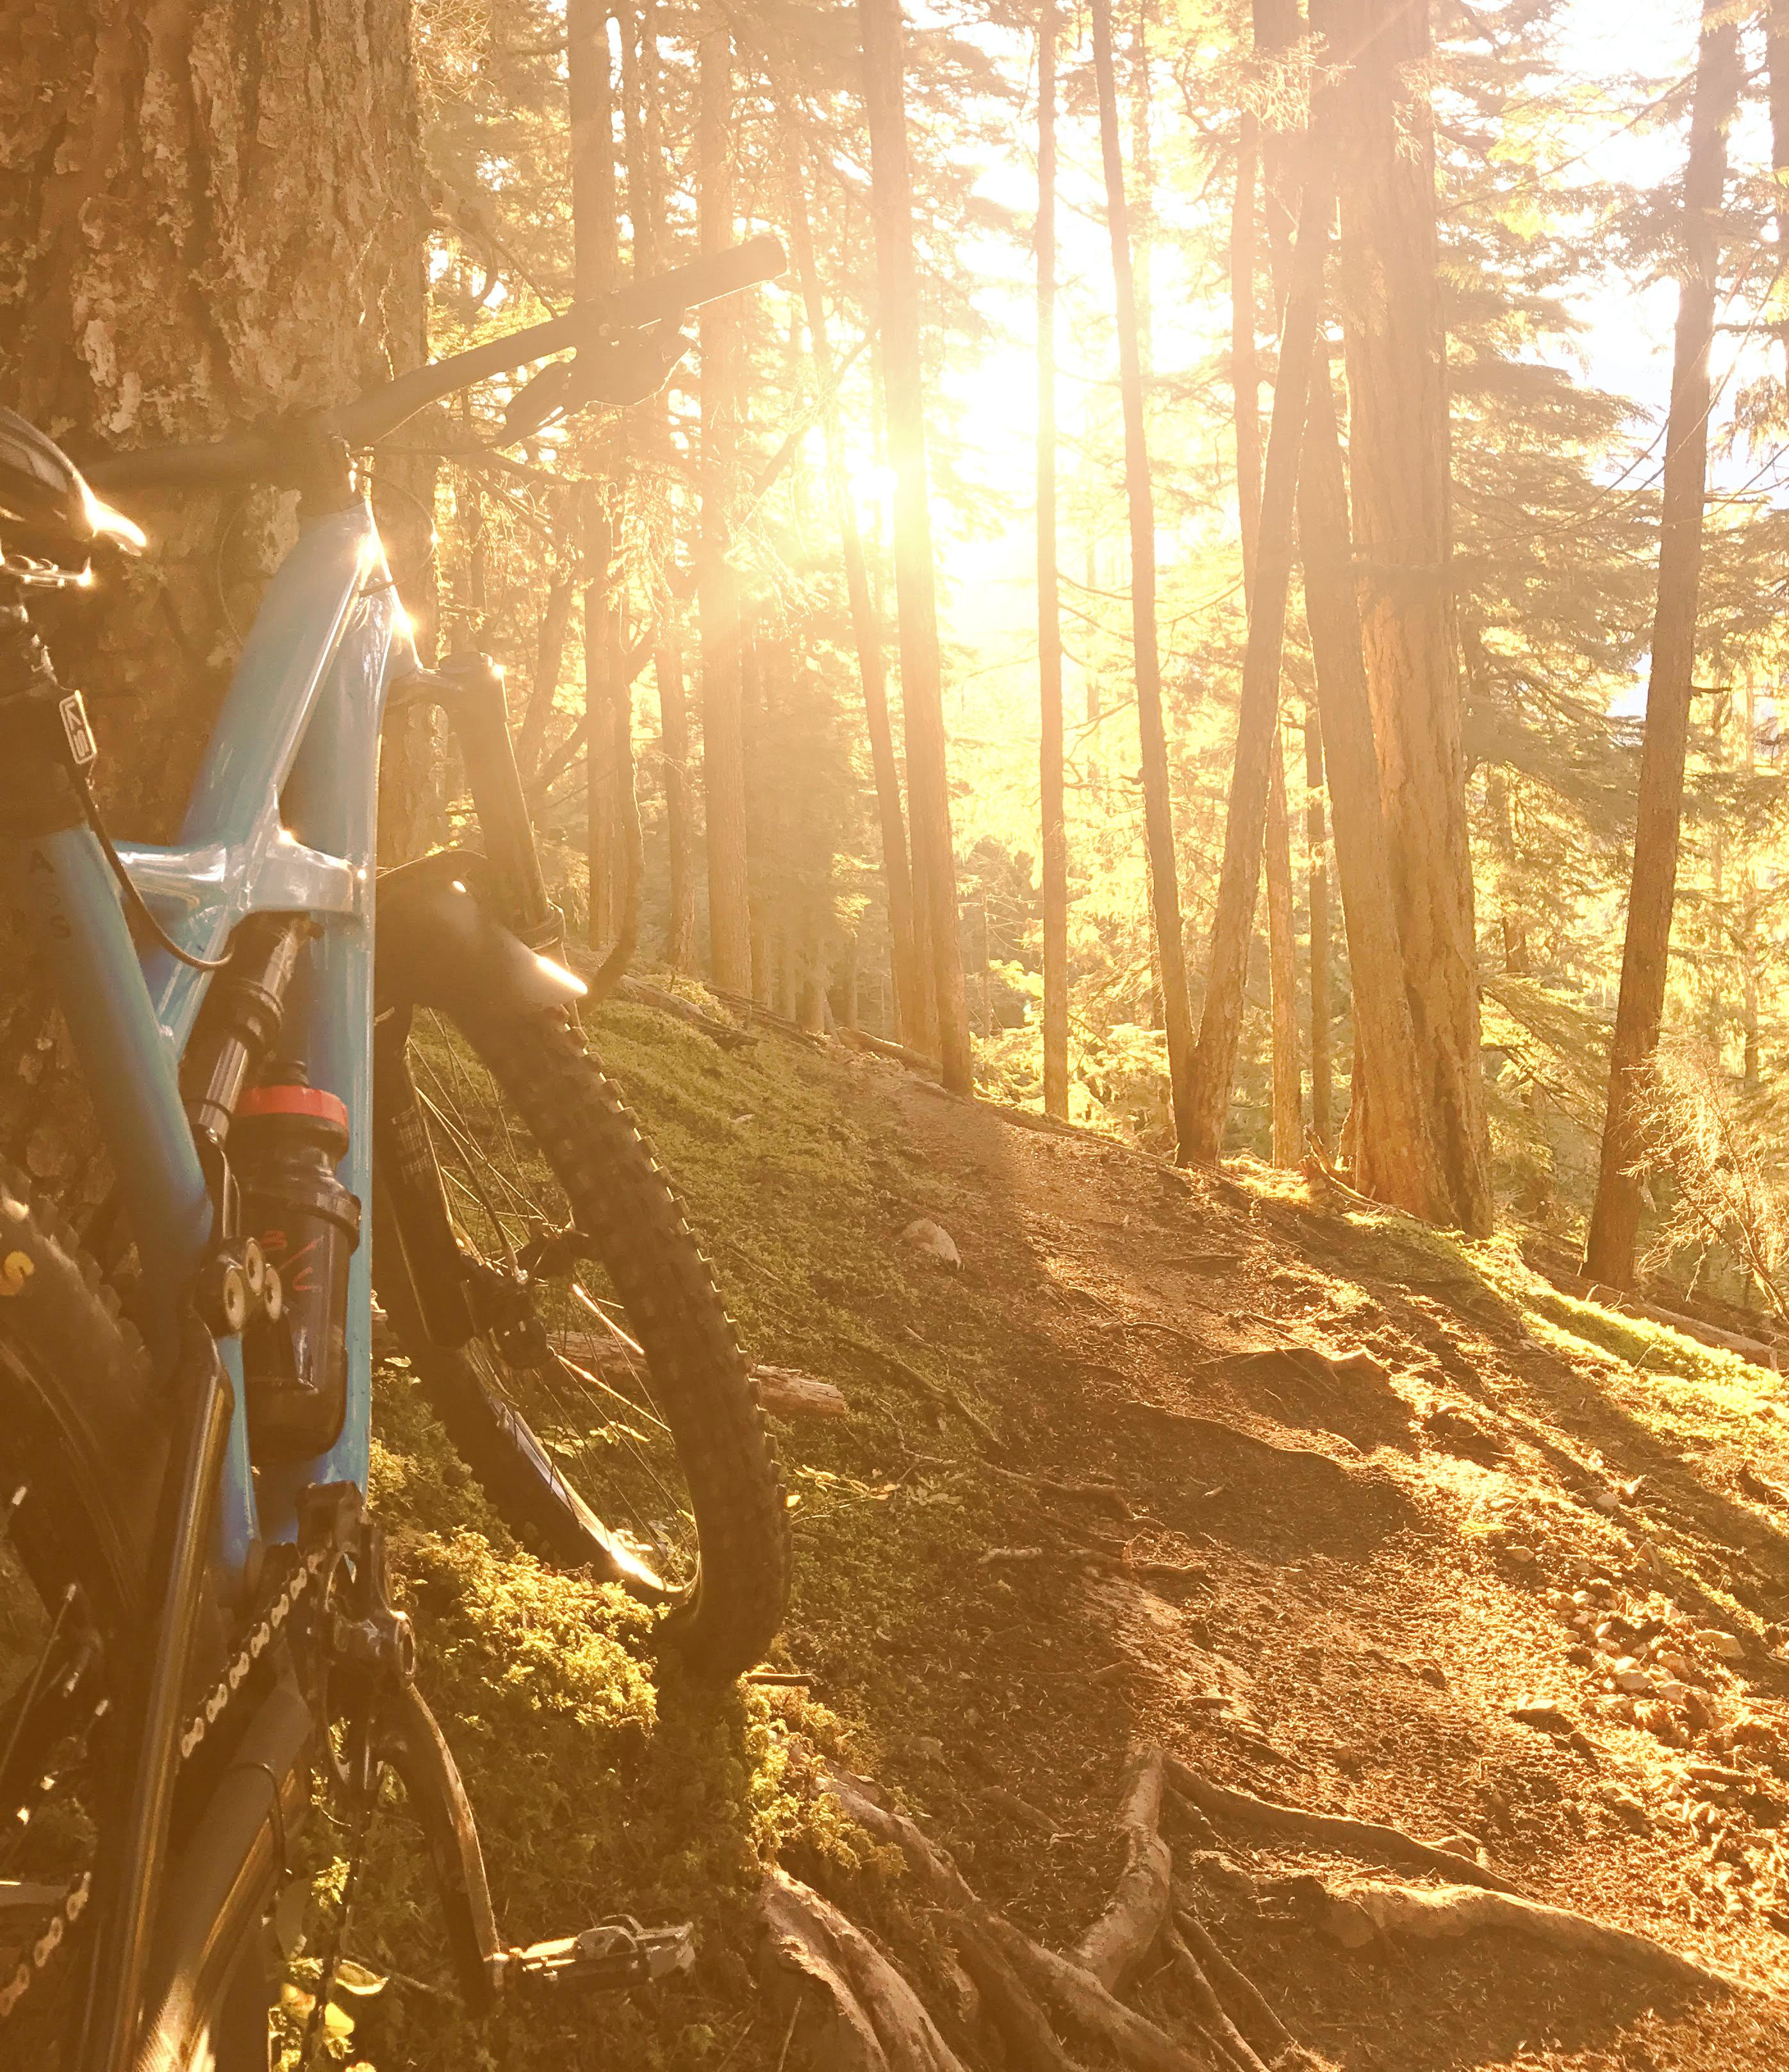 Certified Bike Guide successfully accomplished   Whistler Adventure